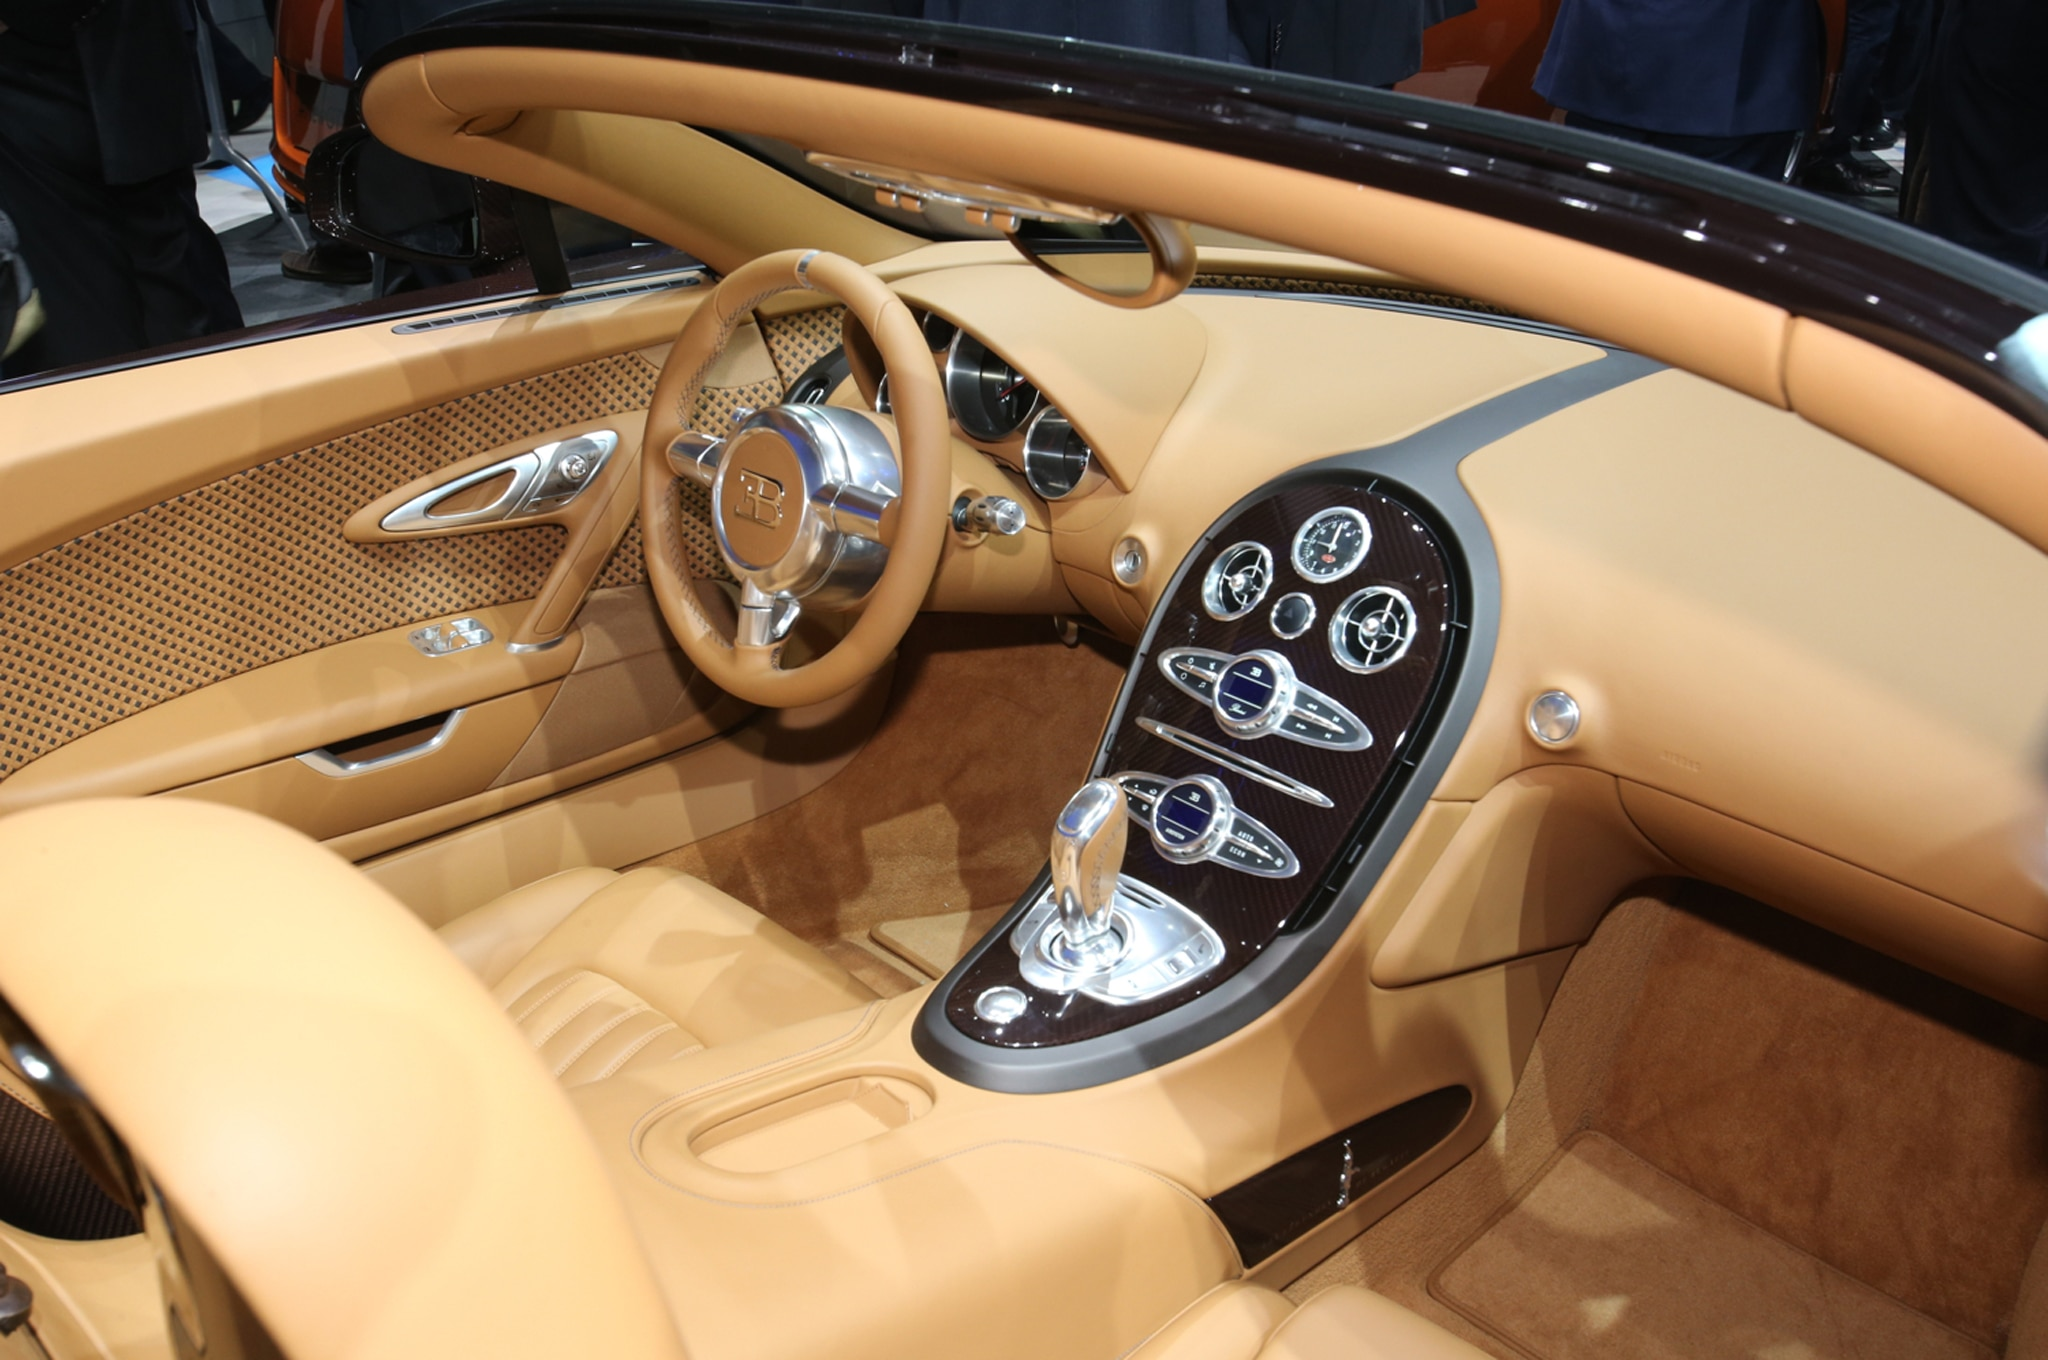 Bugatti-Veyron-Grand-Sport-Vitesse-Legends-Rembrandt-interior Terrific Bugatti Veyron Grand Sport Vitesse Gold Cars Trend